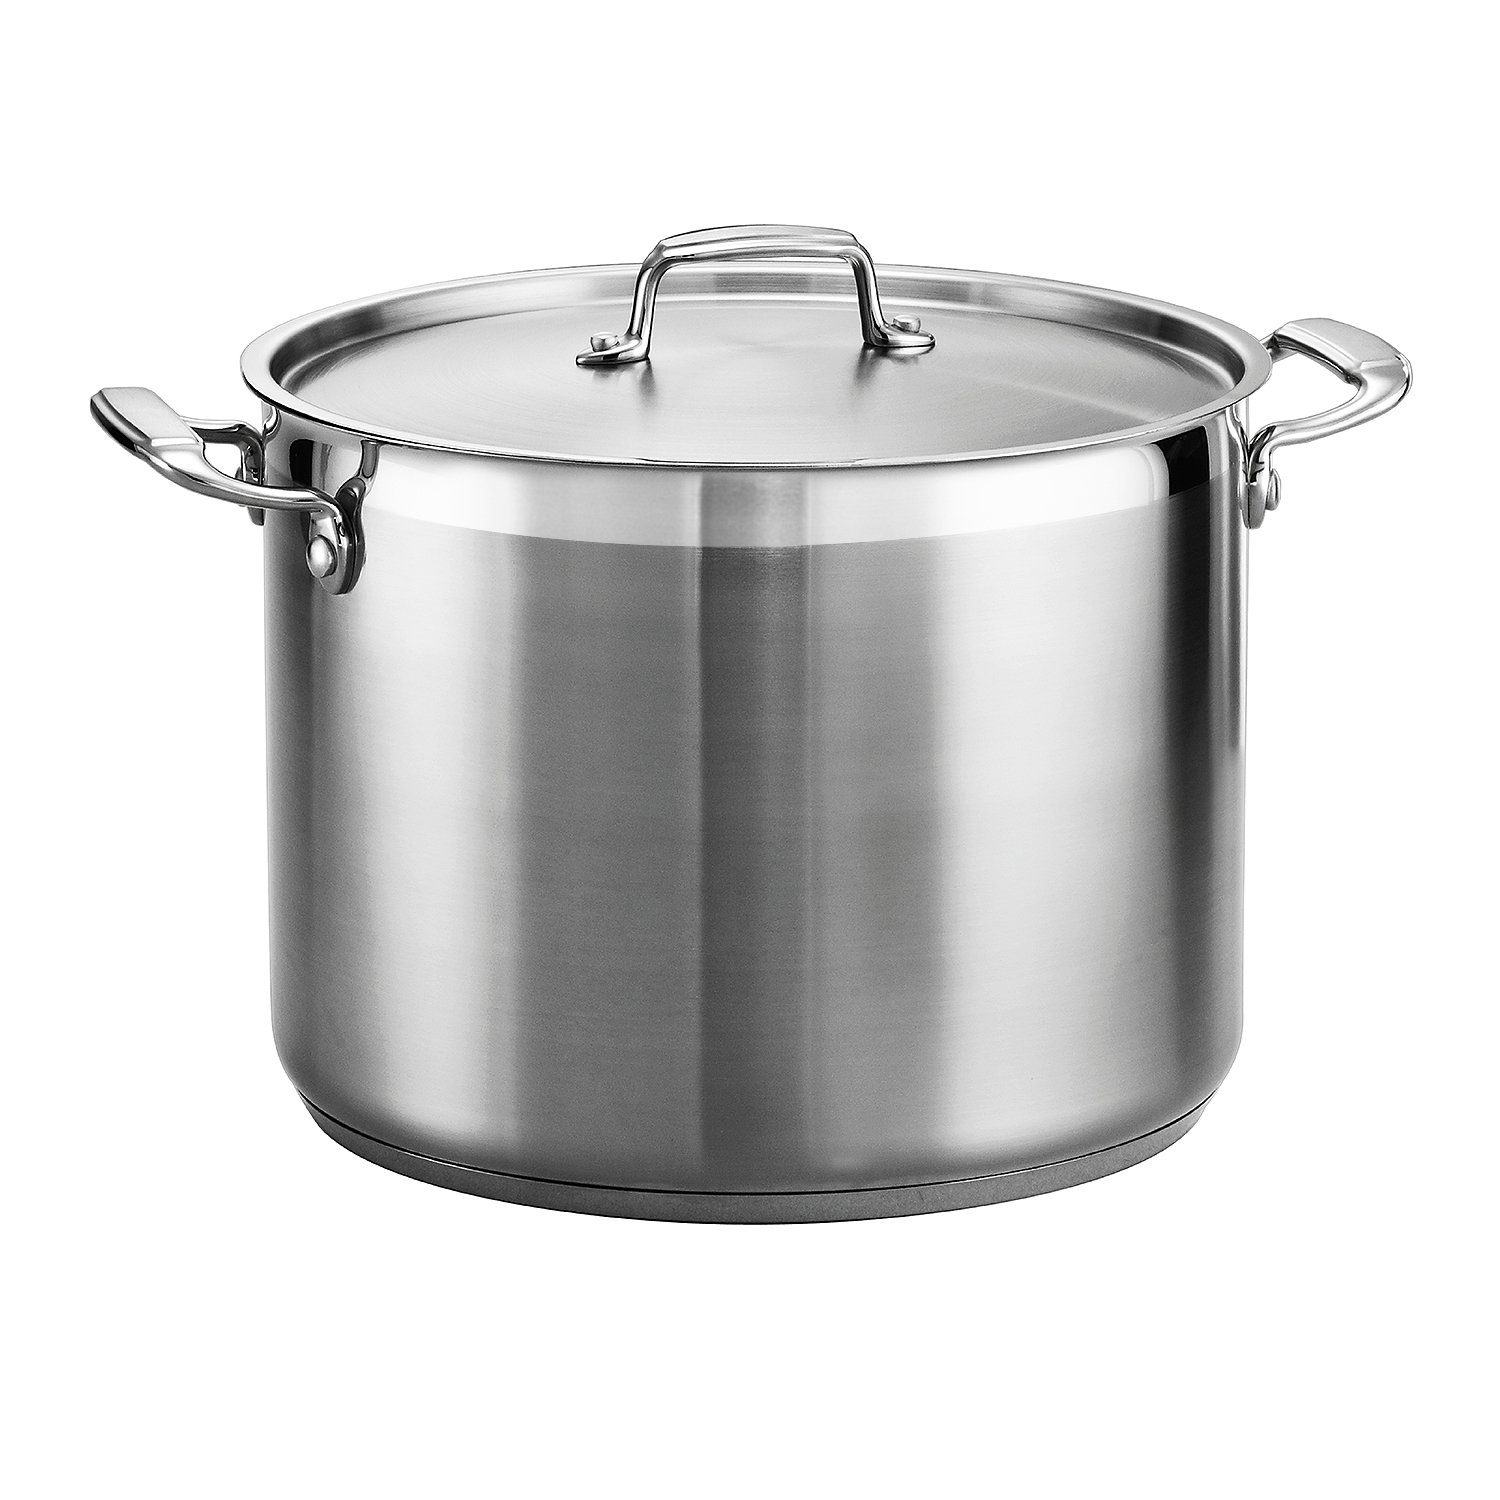 Tramontina 80120/001DS Tramontina Gourmet Stainless Steel Covered Stock Pot, 16-Quart